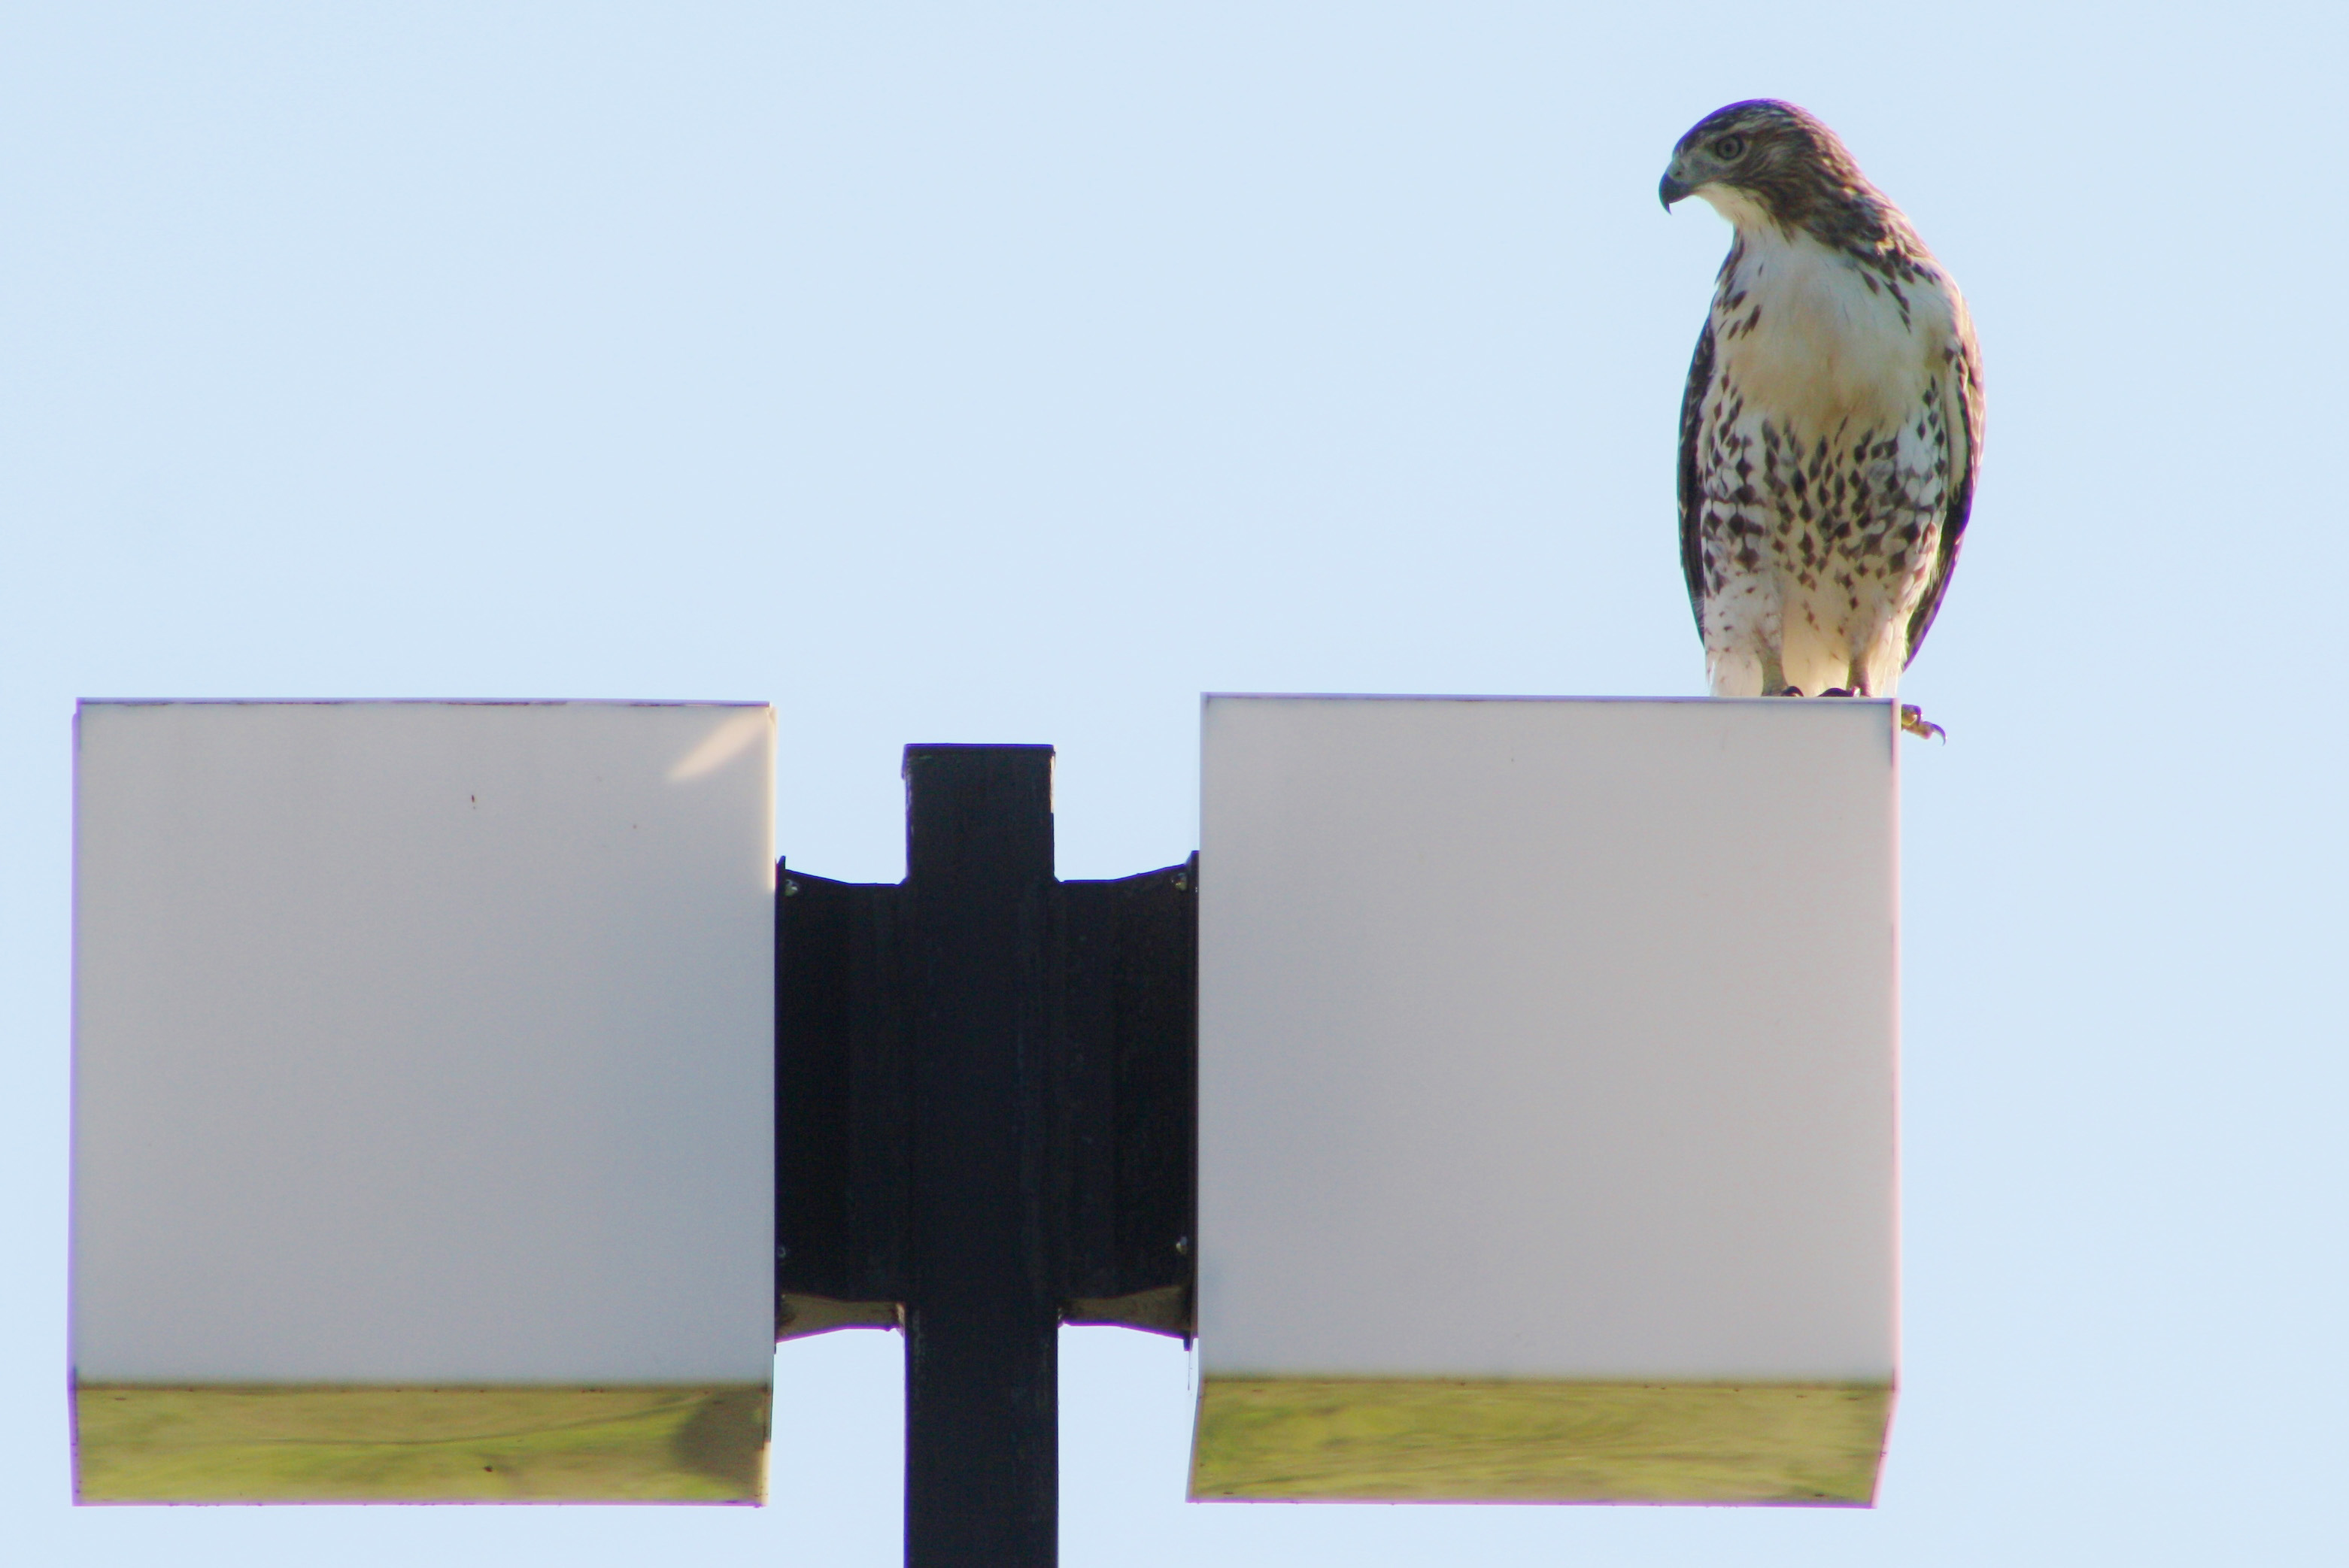 A hawk views the Fermilab site from a lamppost ... Photo: Bridget Scerini, TD